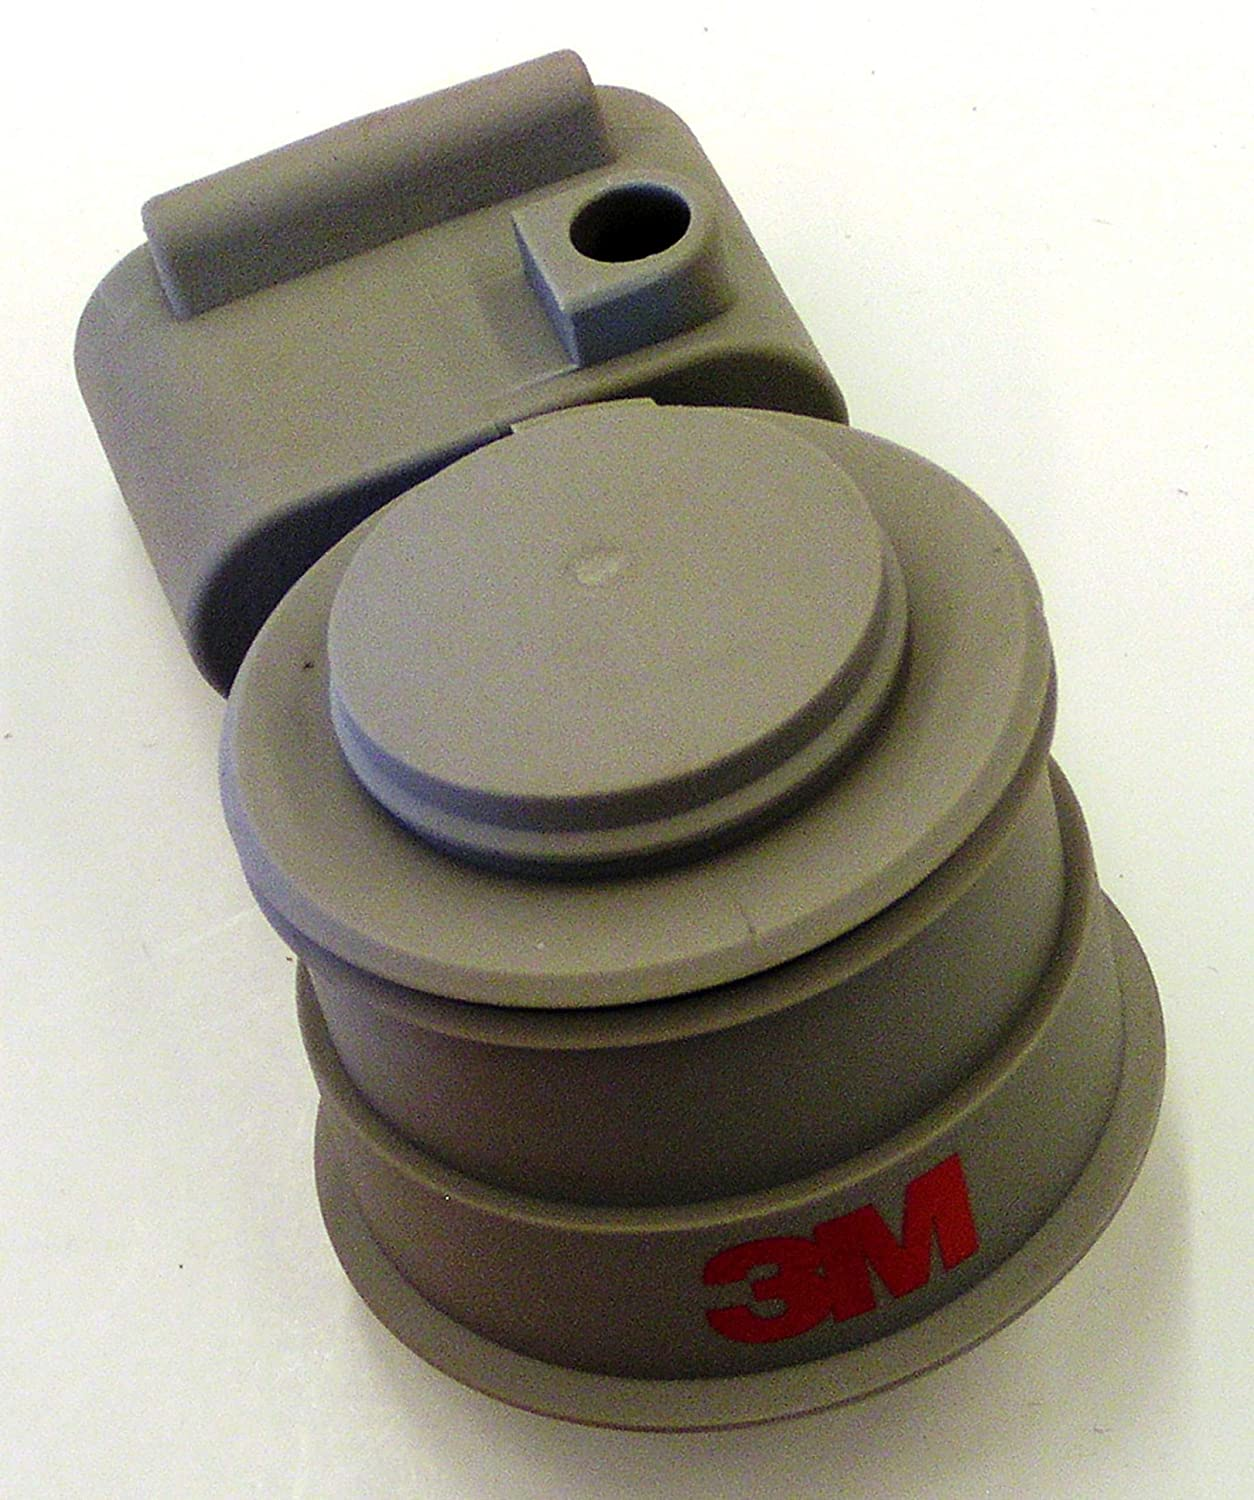 3M 28307-case Random Orbital Sander Housing A1872, 1-1/4 in, 81sC9h1HFtL